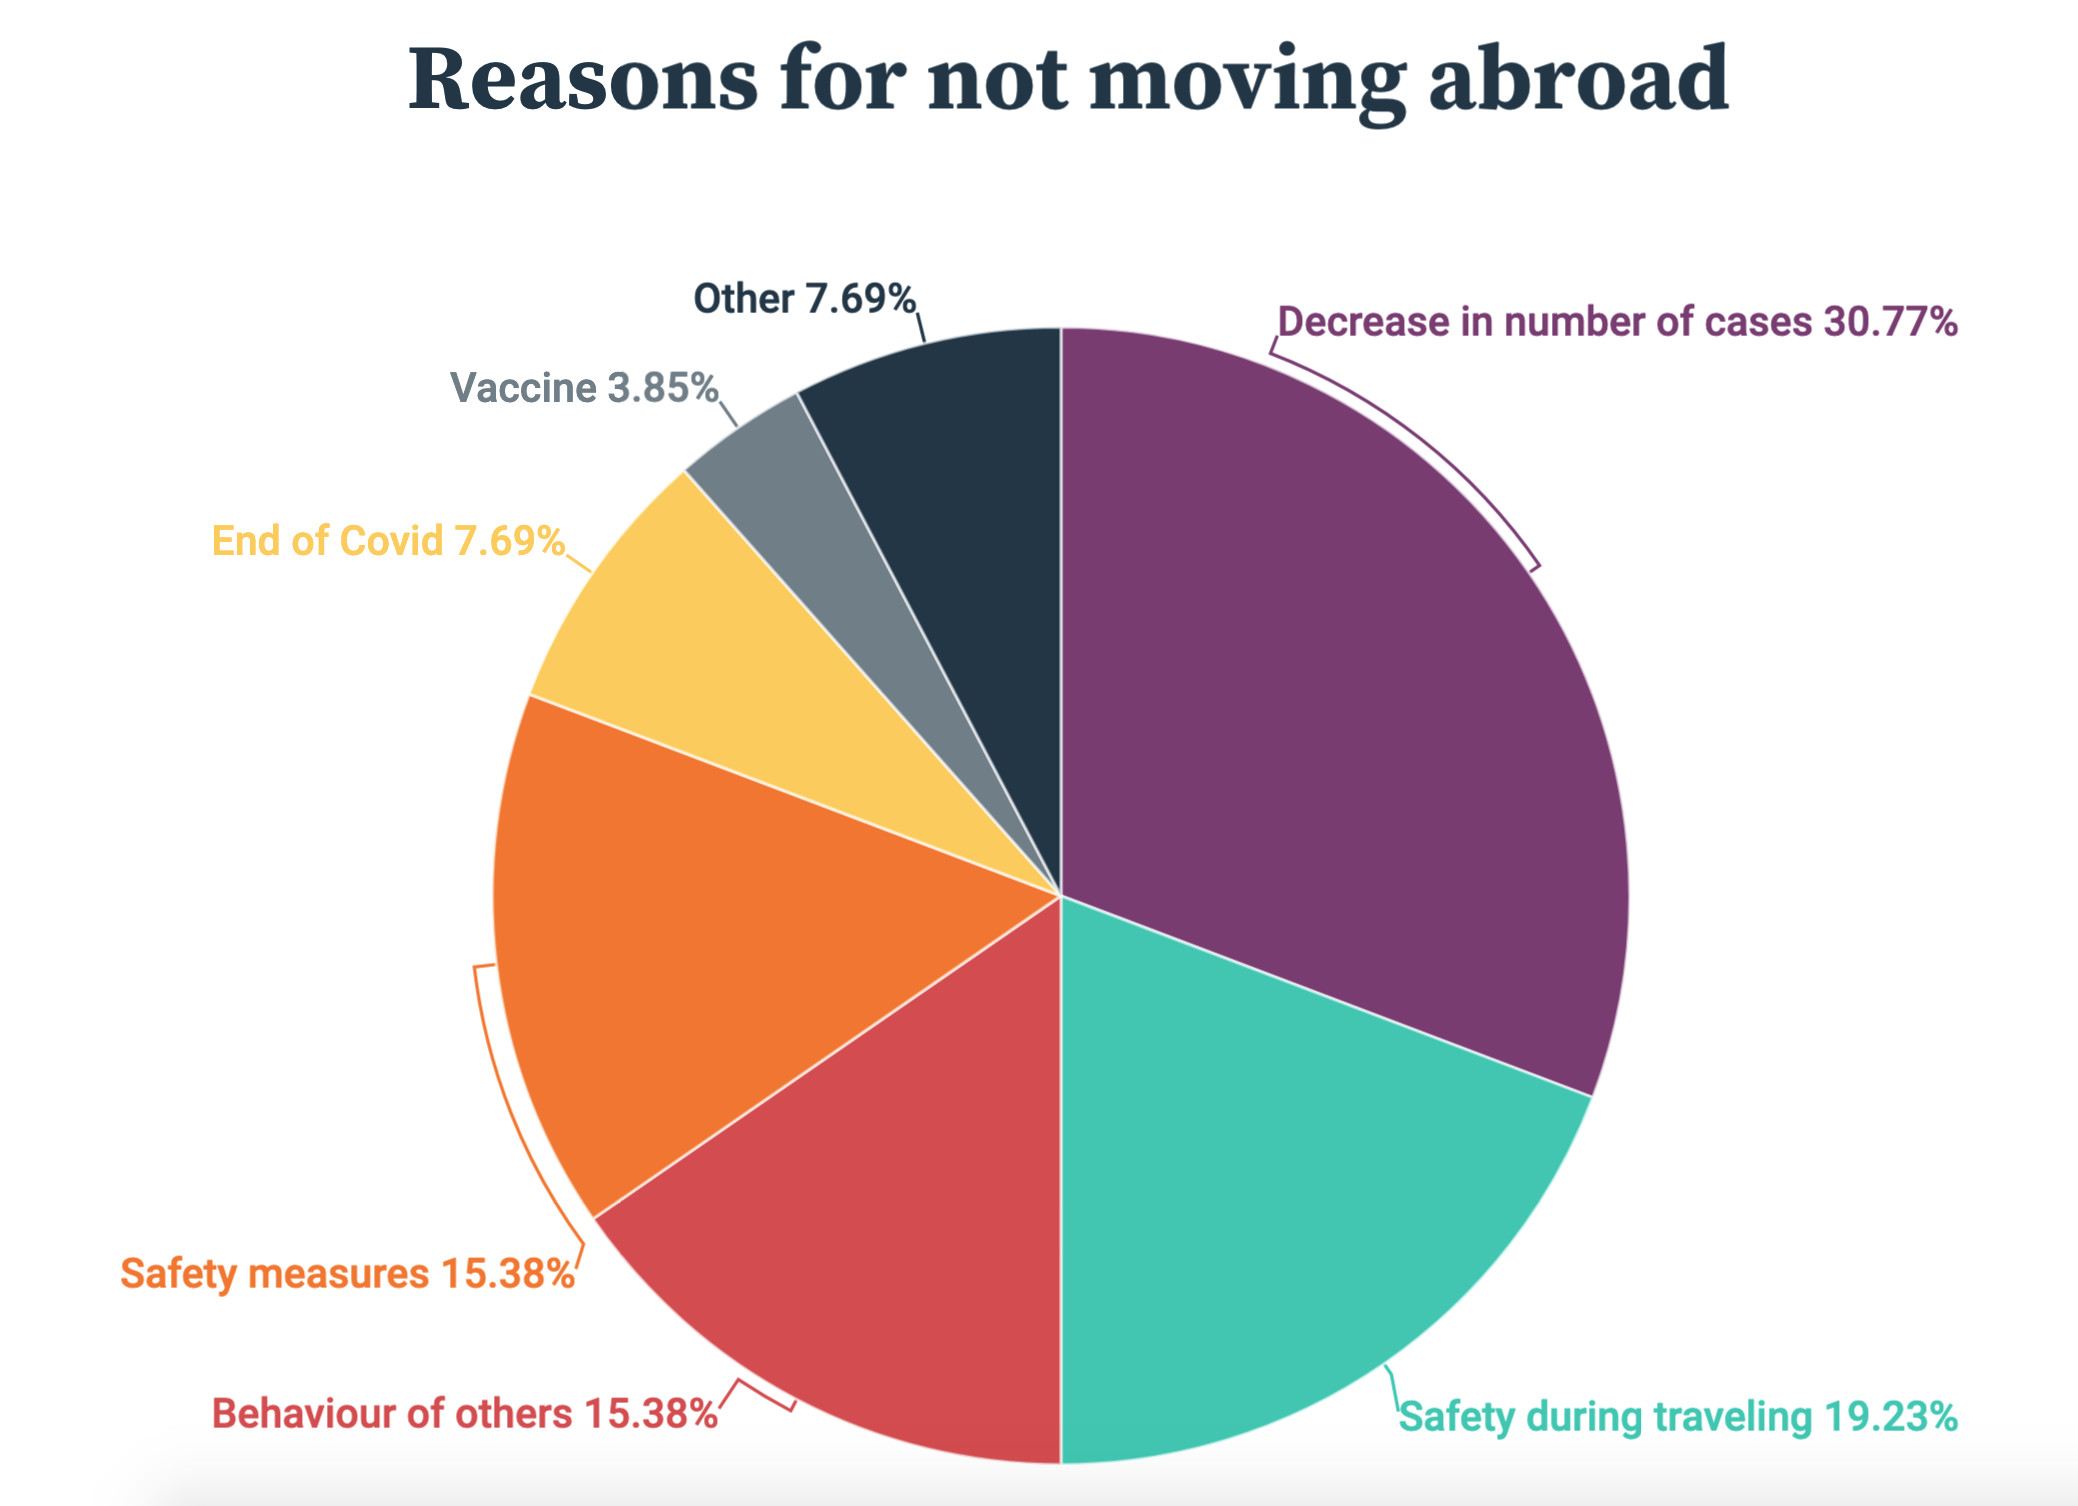 HousingAnywhere Information Reasons For Not Moving Abroad Survey September 2020